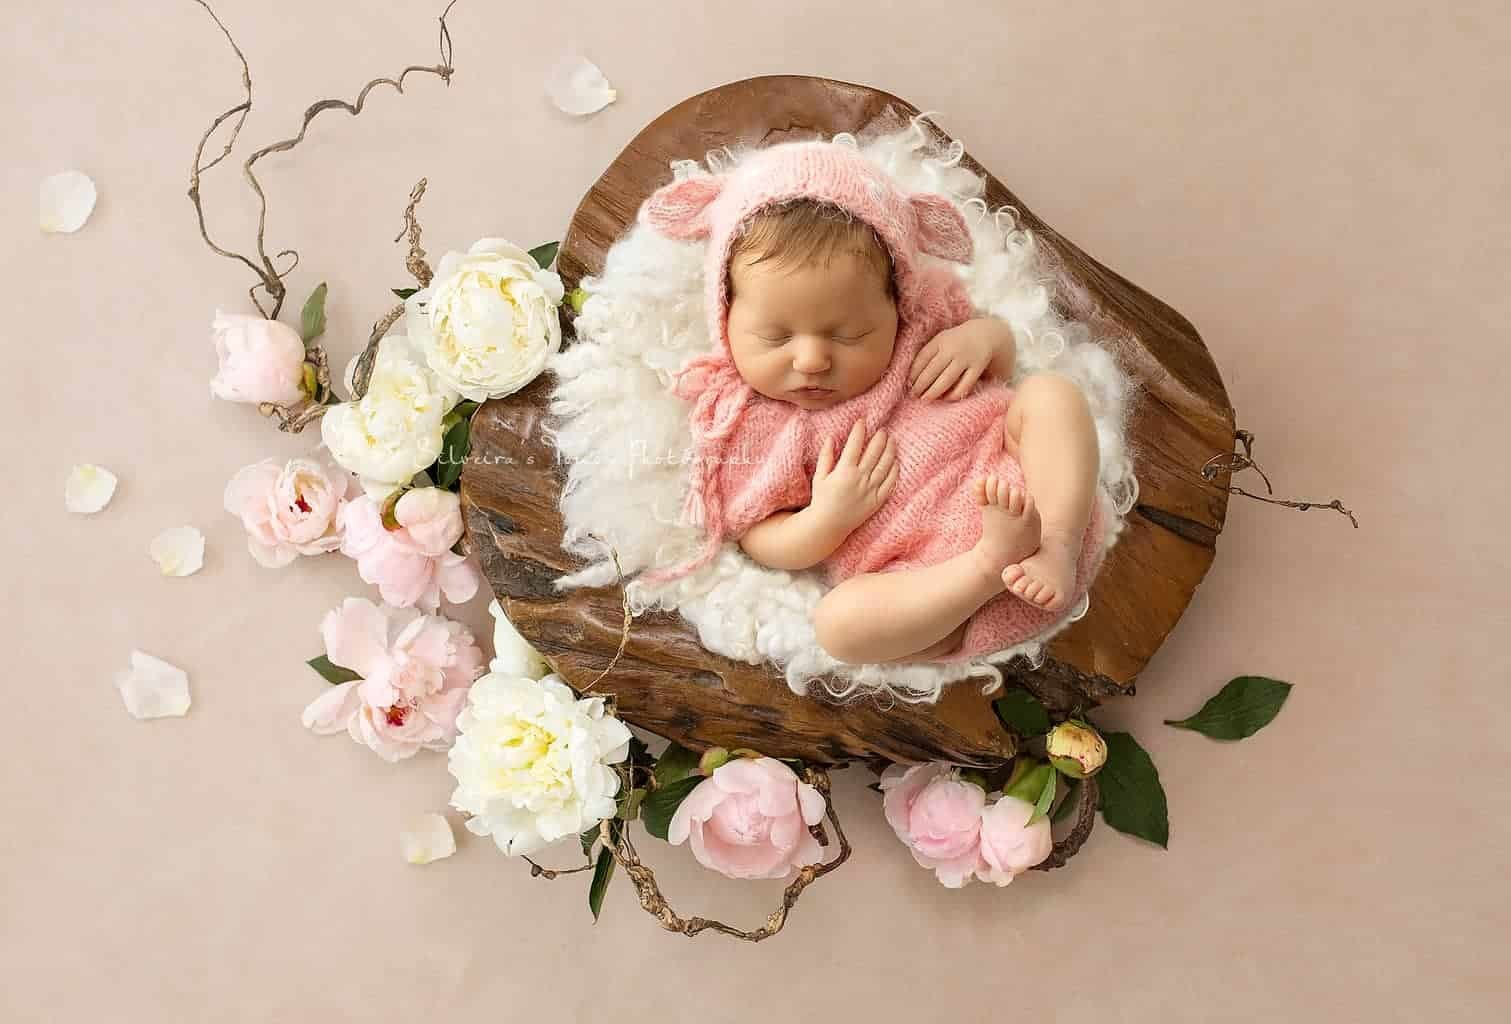 Baby newborn in pink outfit prop